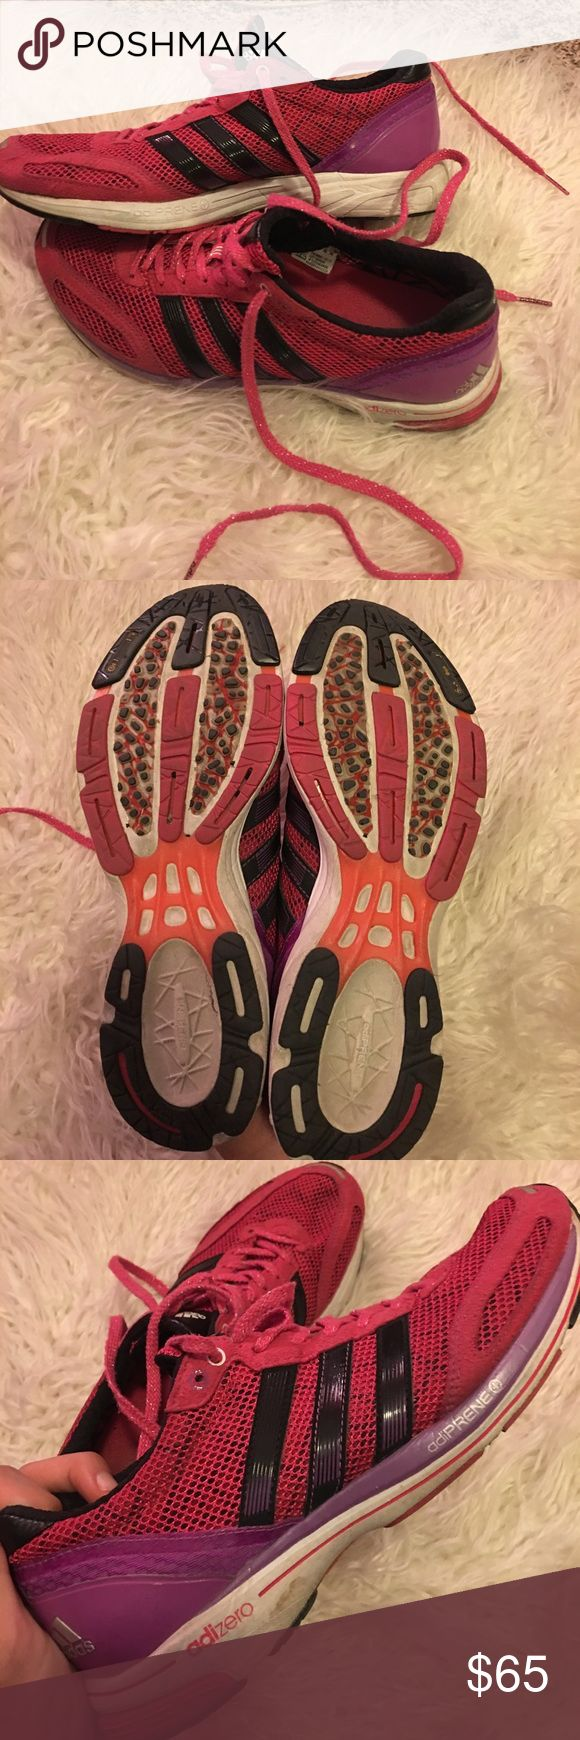 Adidas Adizero Boosts Slightly worn Adidas tennis shoes. Perfect for training and running!  Sparkly shoe strings! adidas Shoes Athletic Shoes